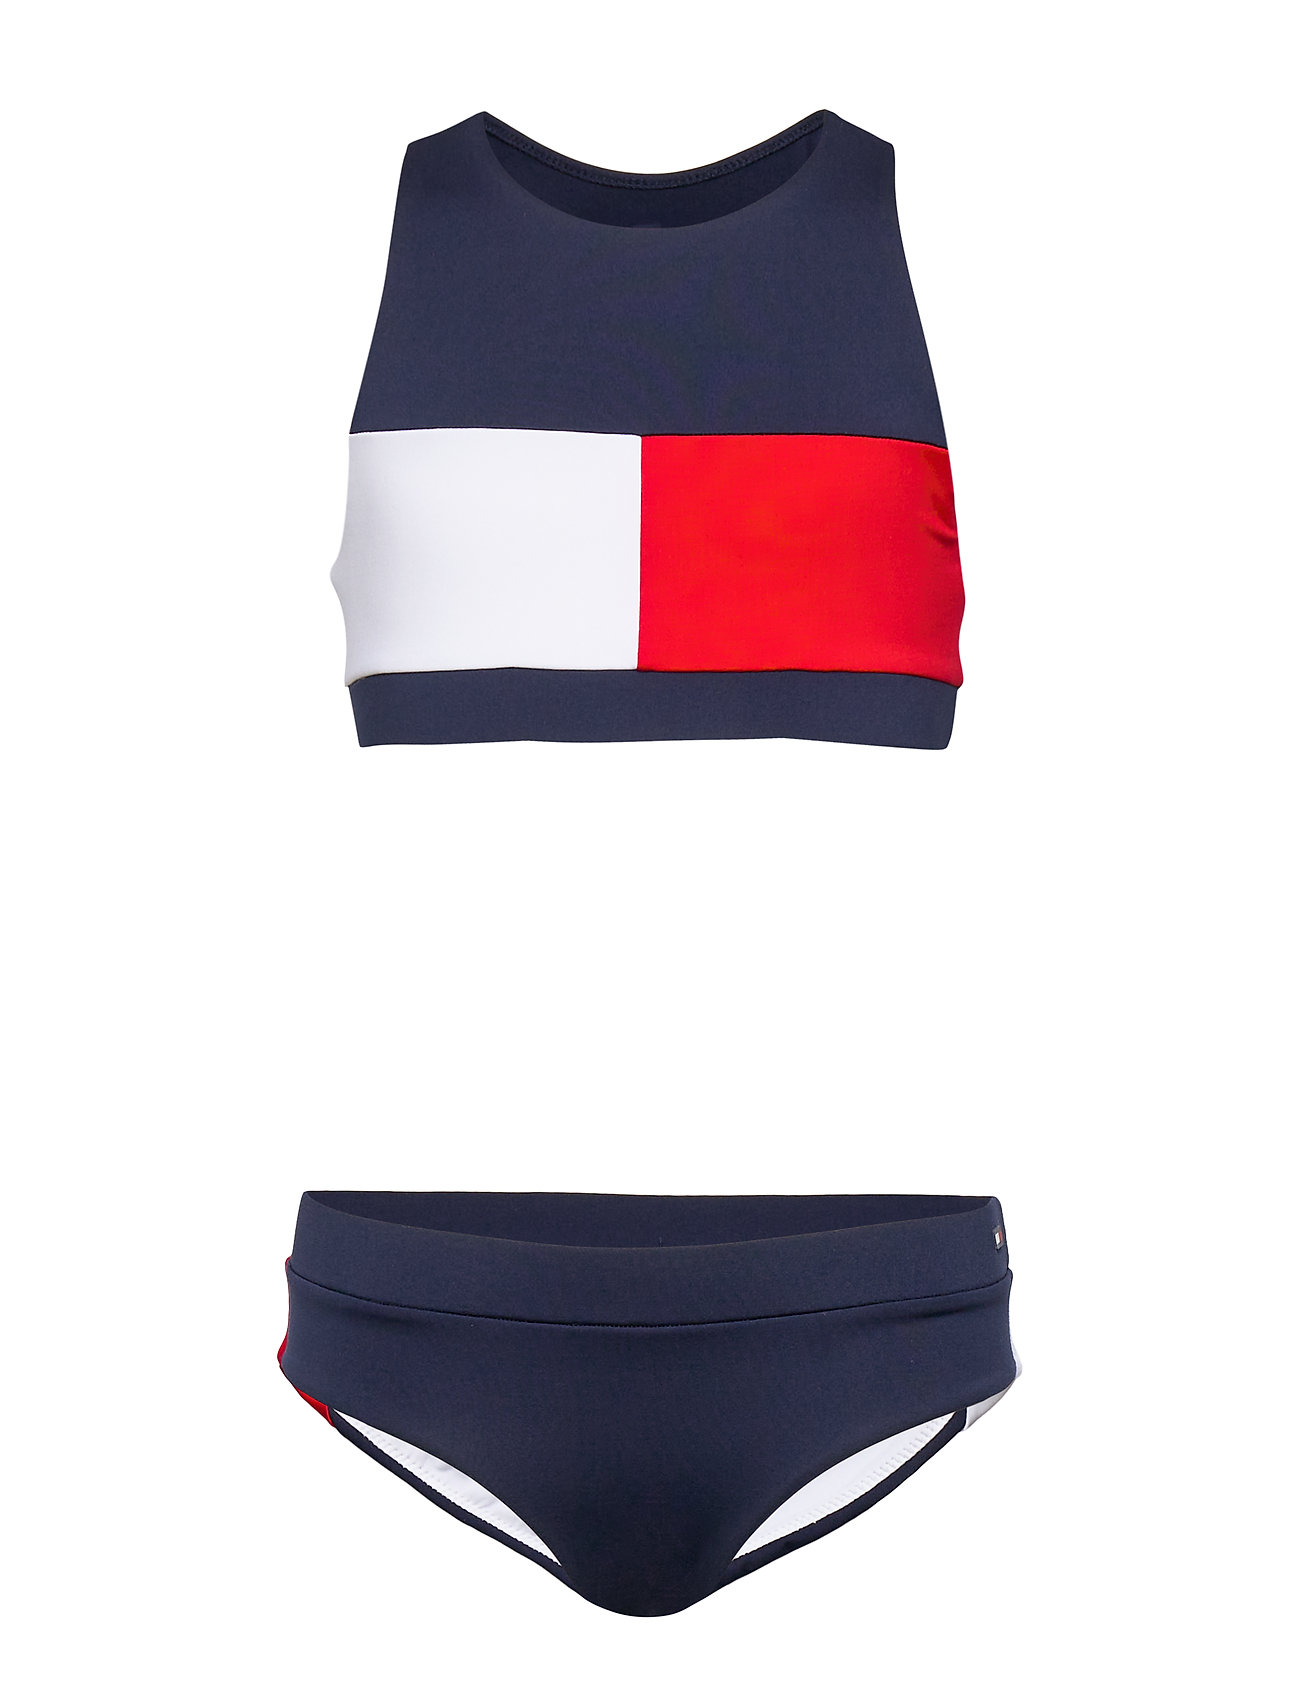 Tommy Hilfiger CROP TOP SET - PITCH BLUE 654-870